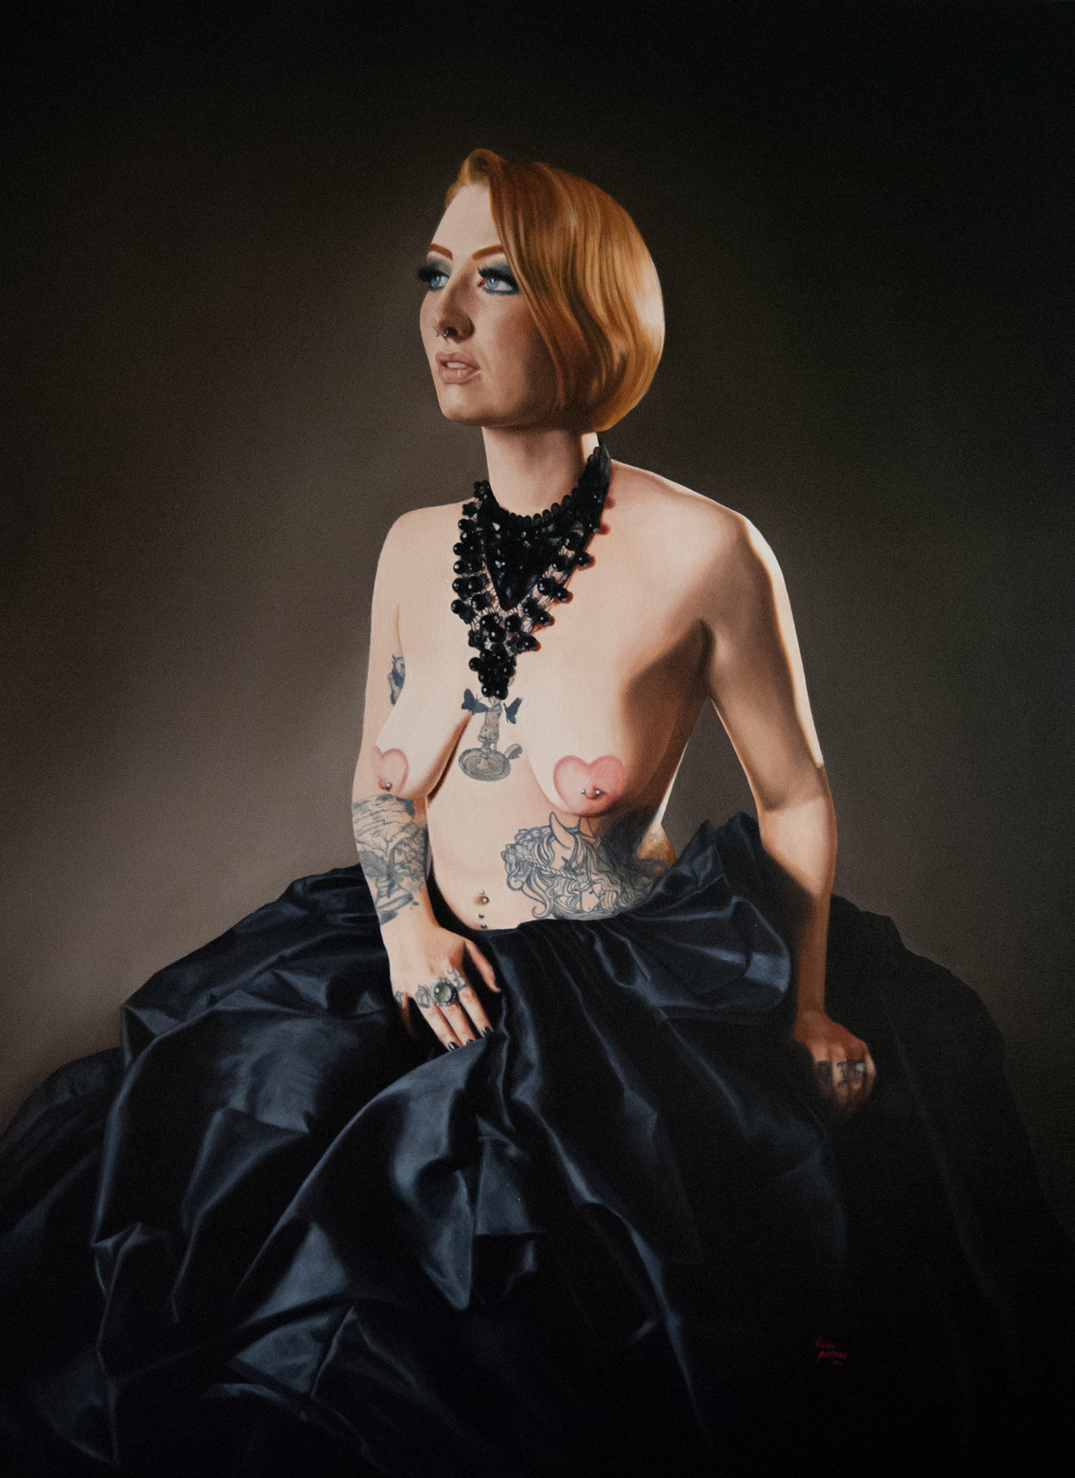 Stacie  by Vivien Masters, oil on linen, 914x1219mm, 2014